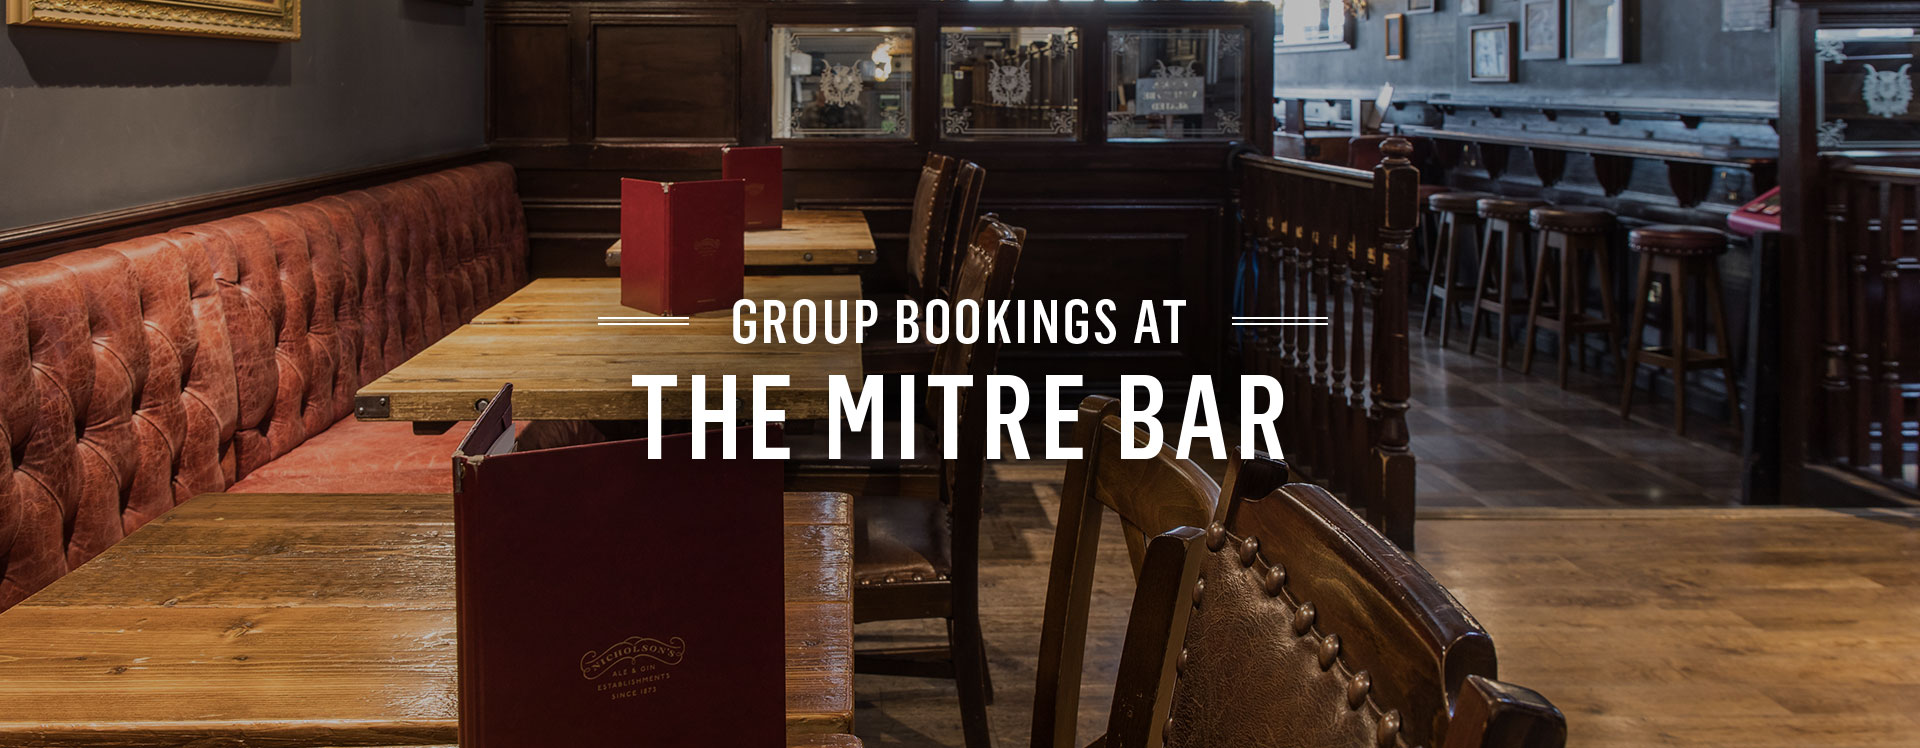 Group Bookings at The Mitre Bar